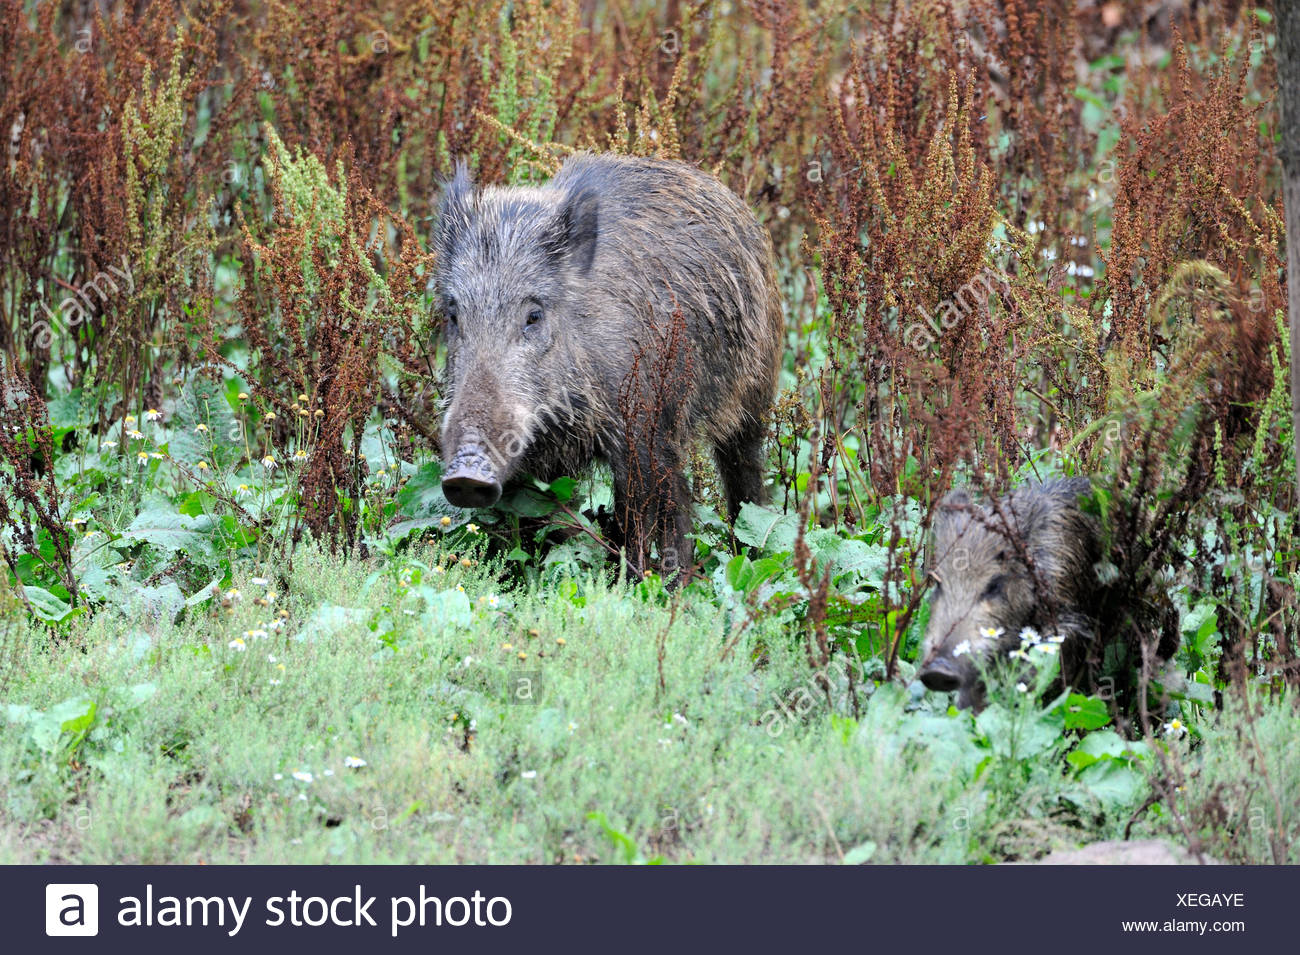 Wild boar, animal, Sus scrofa scrofa, sow, wild boars, black game, pigs, pig, vertebrates, mammals, real pigs, pigs, Germany, Eur - Stock Image